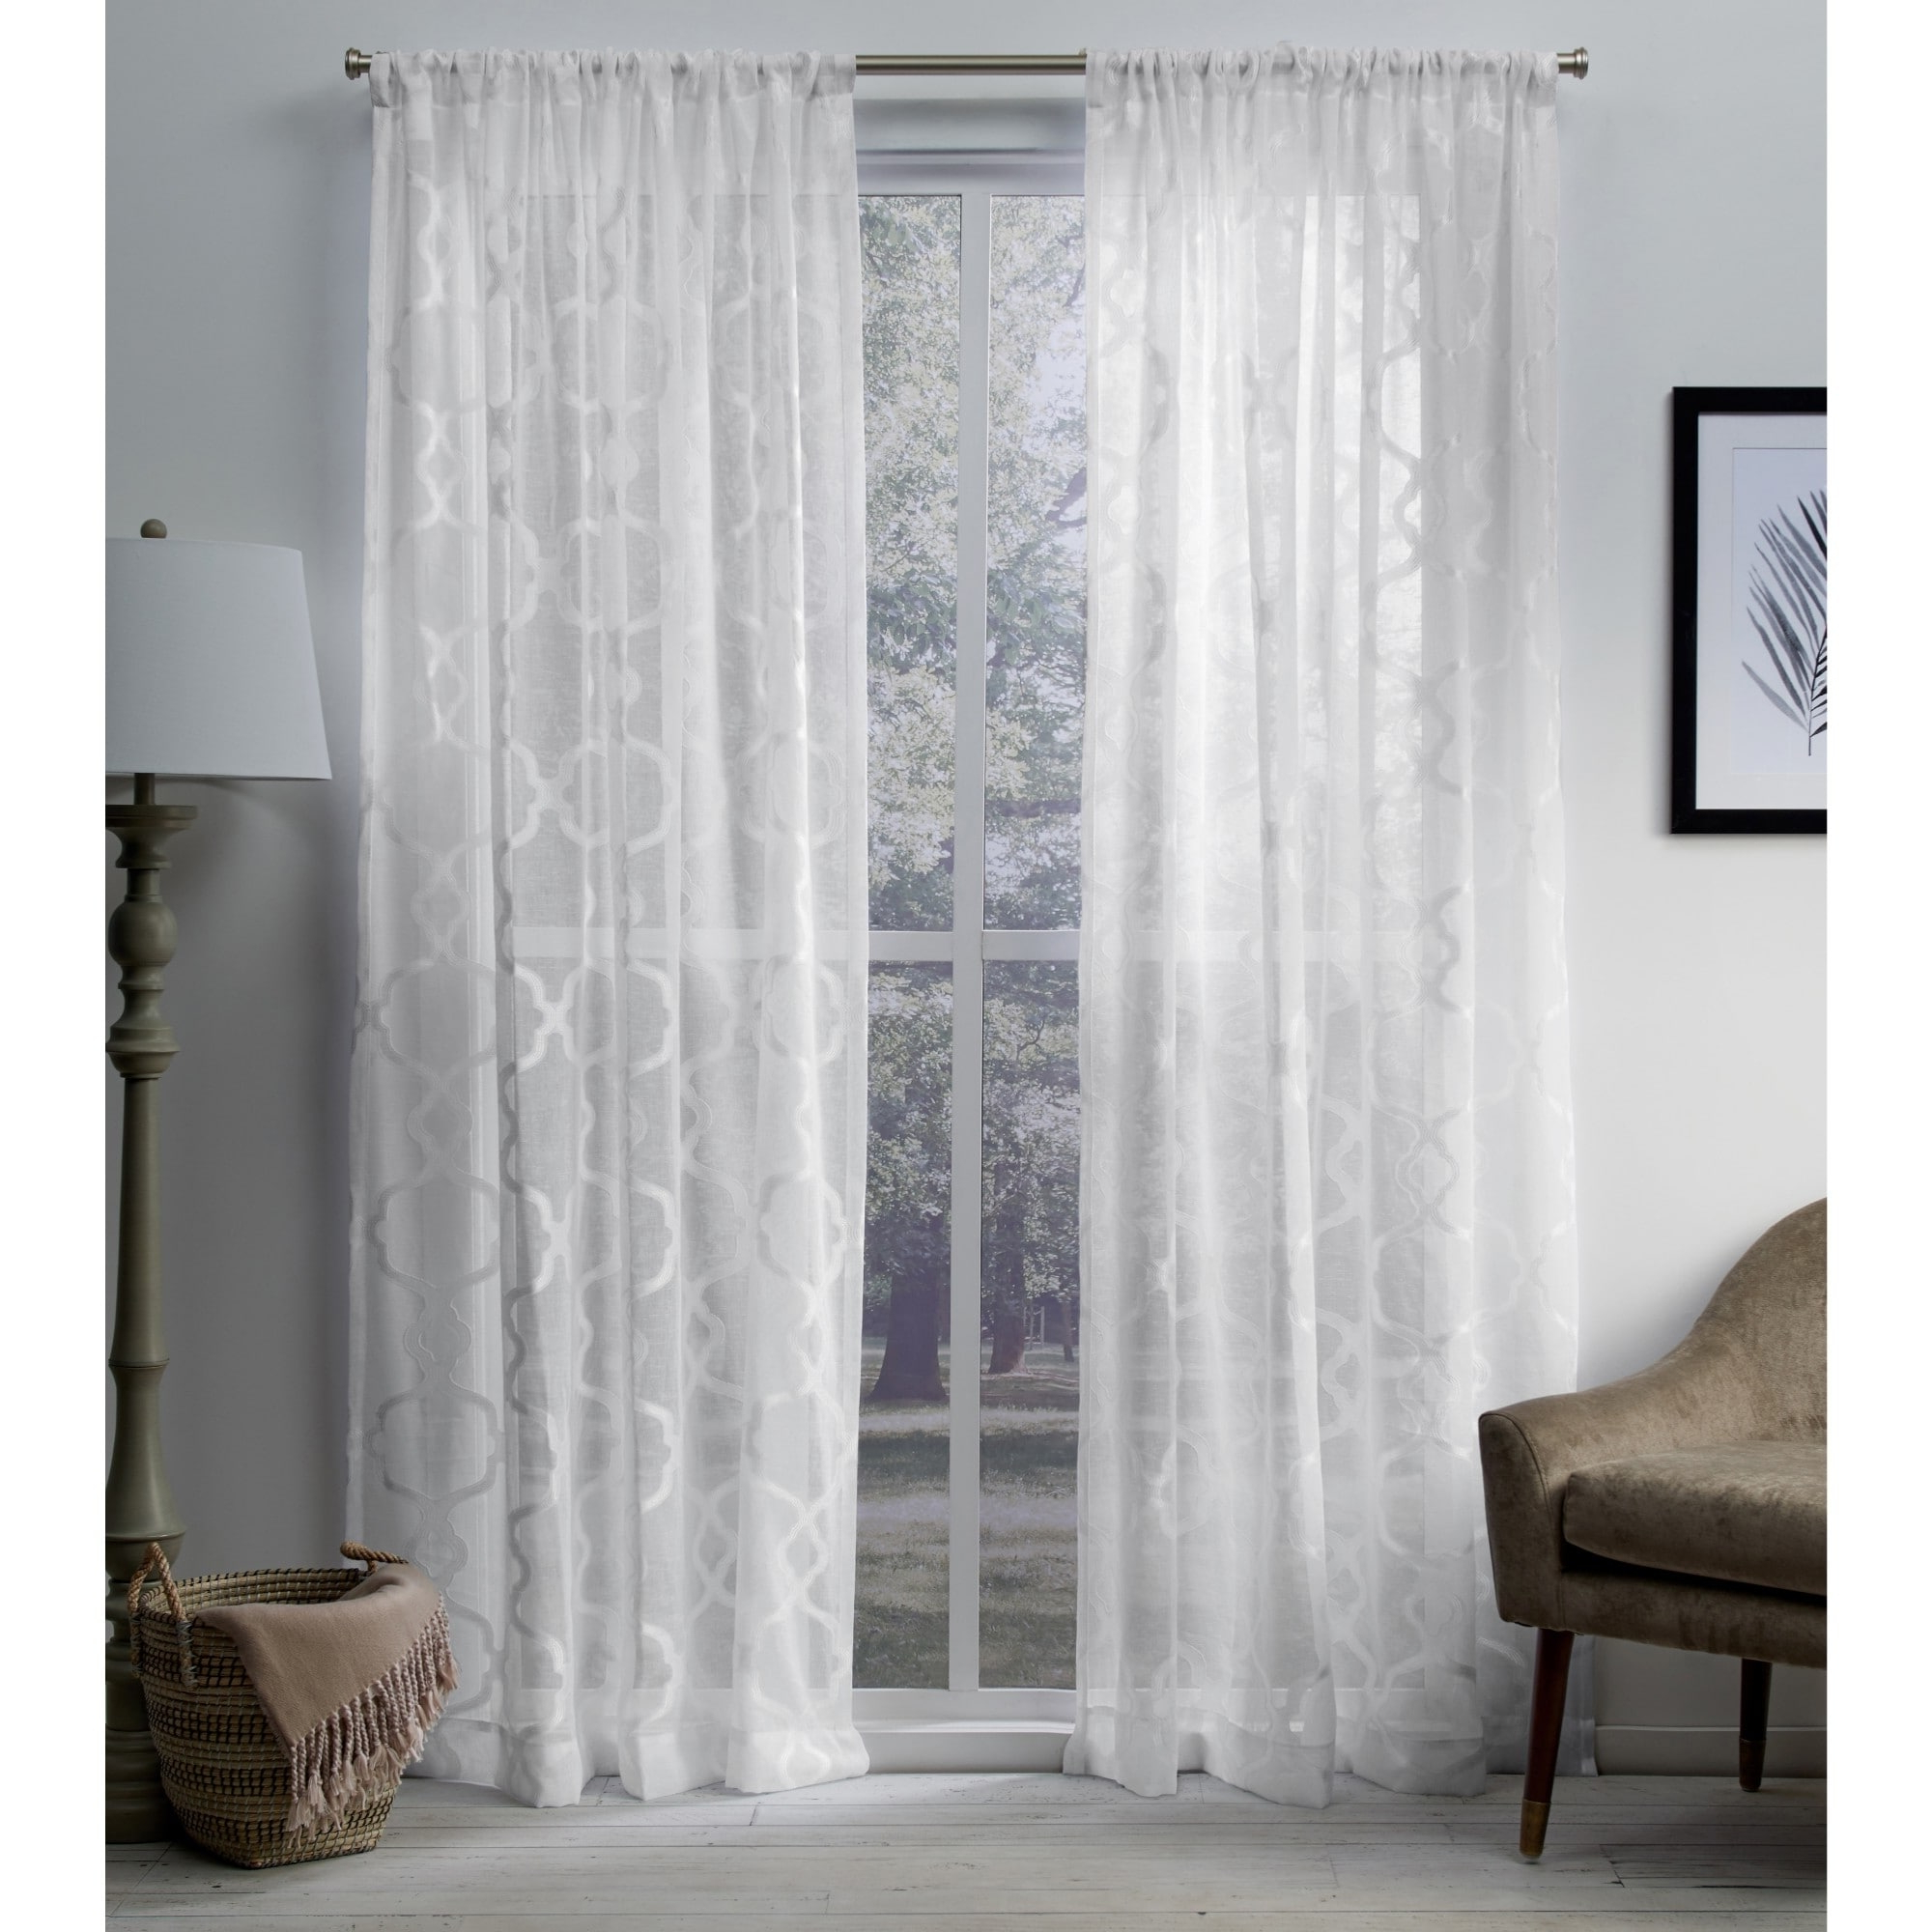 Famous Ati Home Jacquard Sheer Rod Pocket Top Curtain Panel Pair In Luxury Collection Venetian Sheer Curtain Panel Pairs (View 8 of 20)